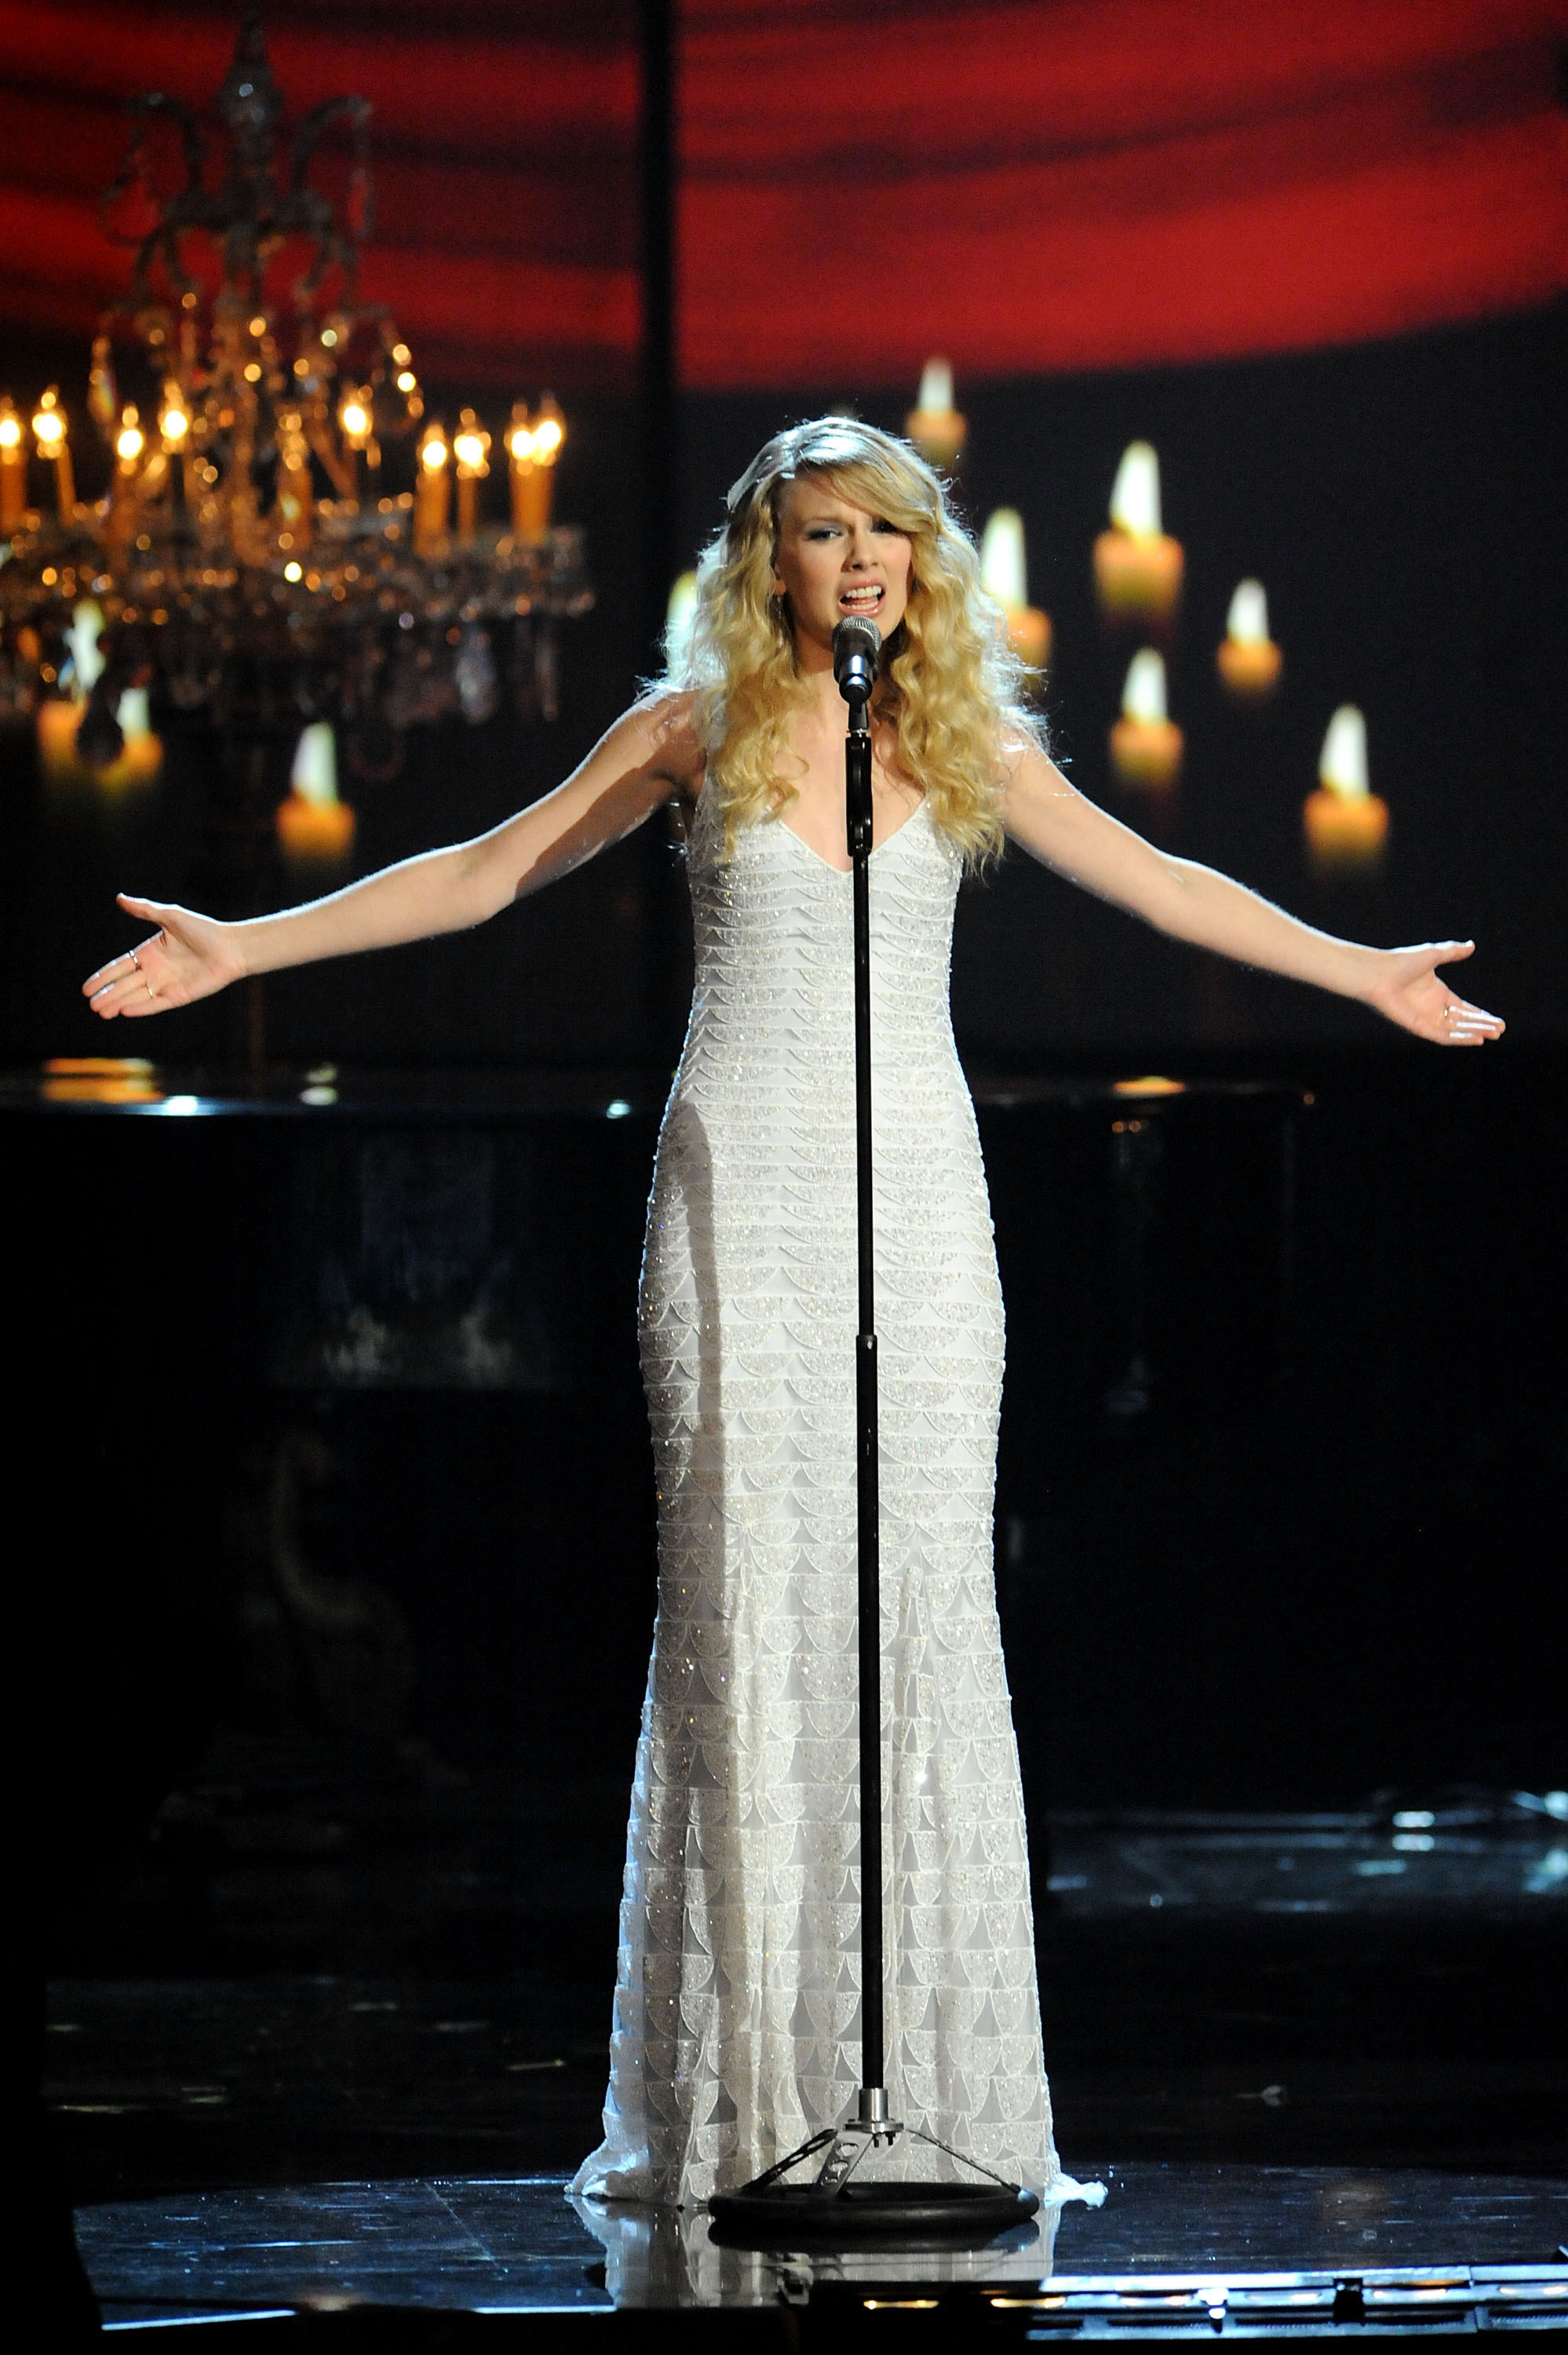 Taylor Swift performing White Horse at the American Music Awards in a long white dress